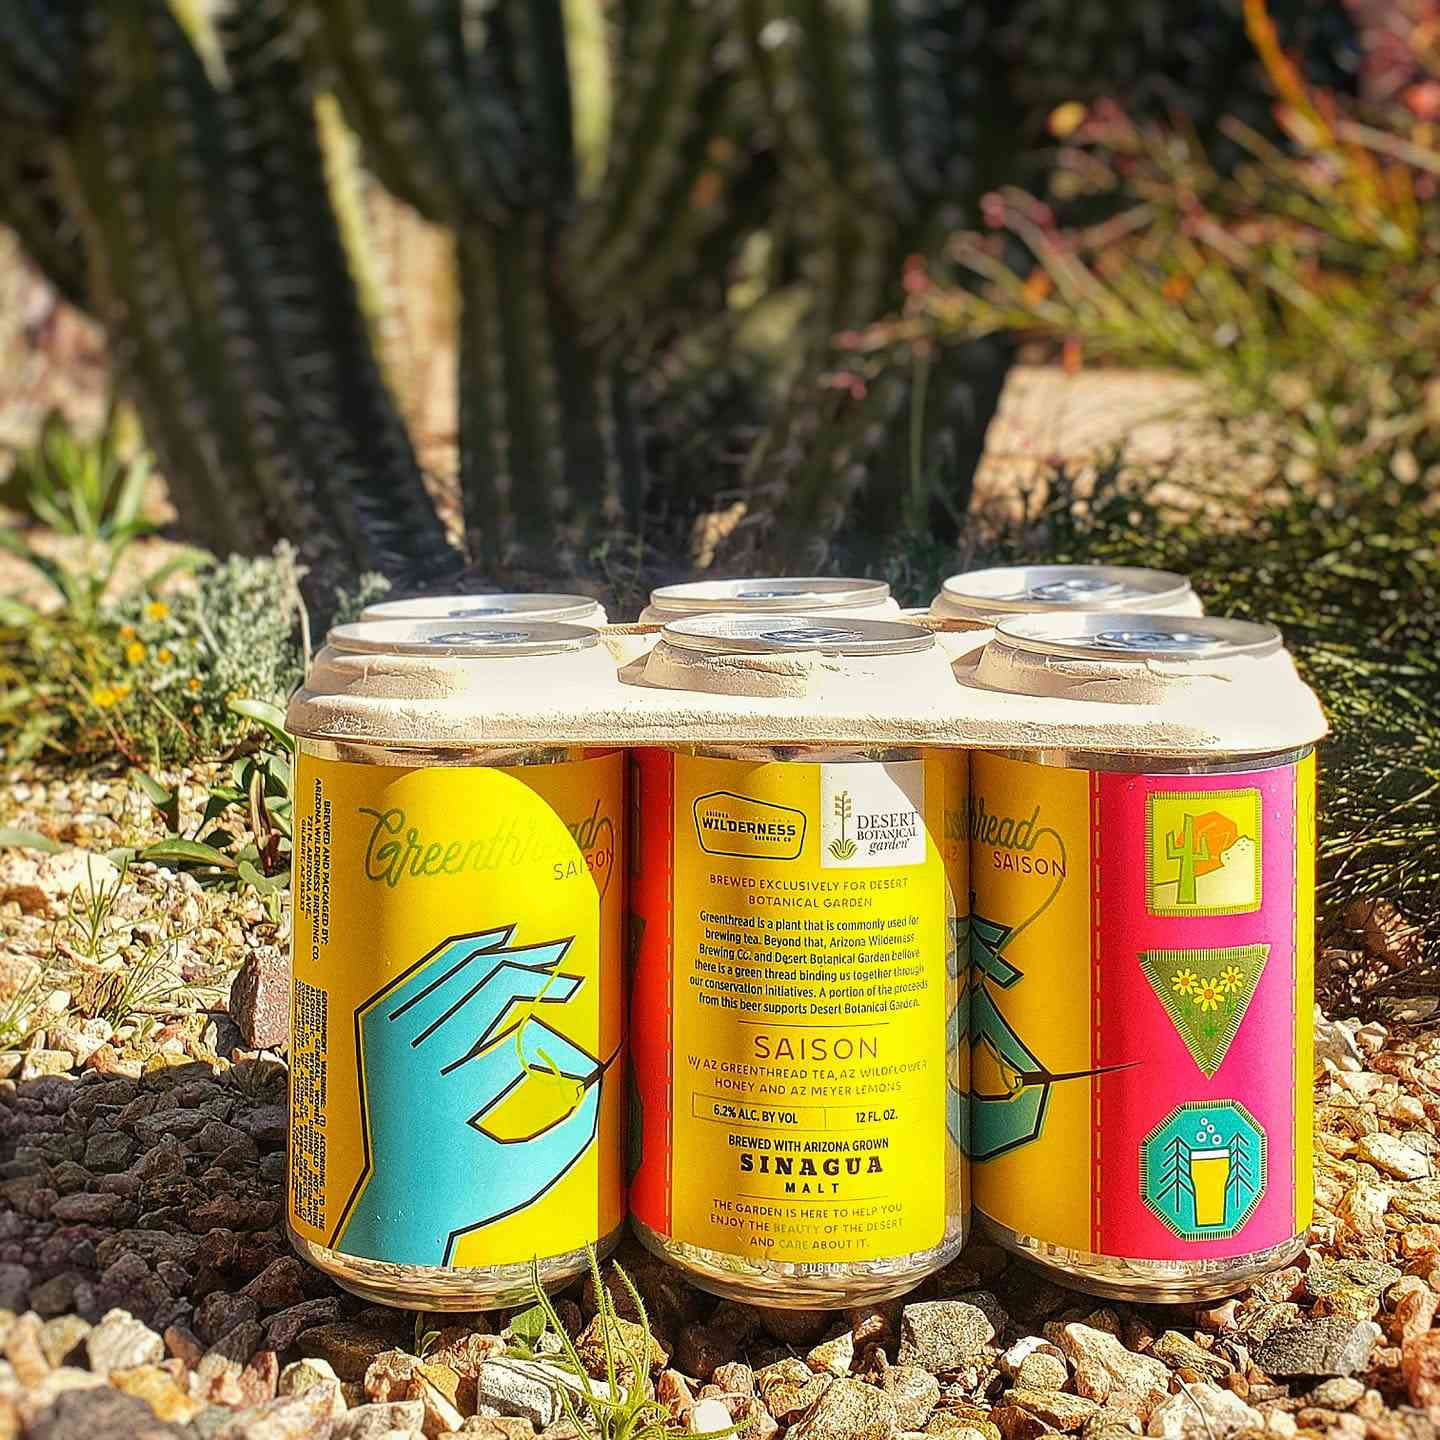 A six pack of Greenthread Saison from Arizona Wilderness Brewing Company sitting in front of a cactus